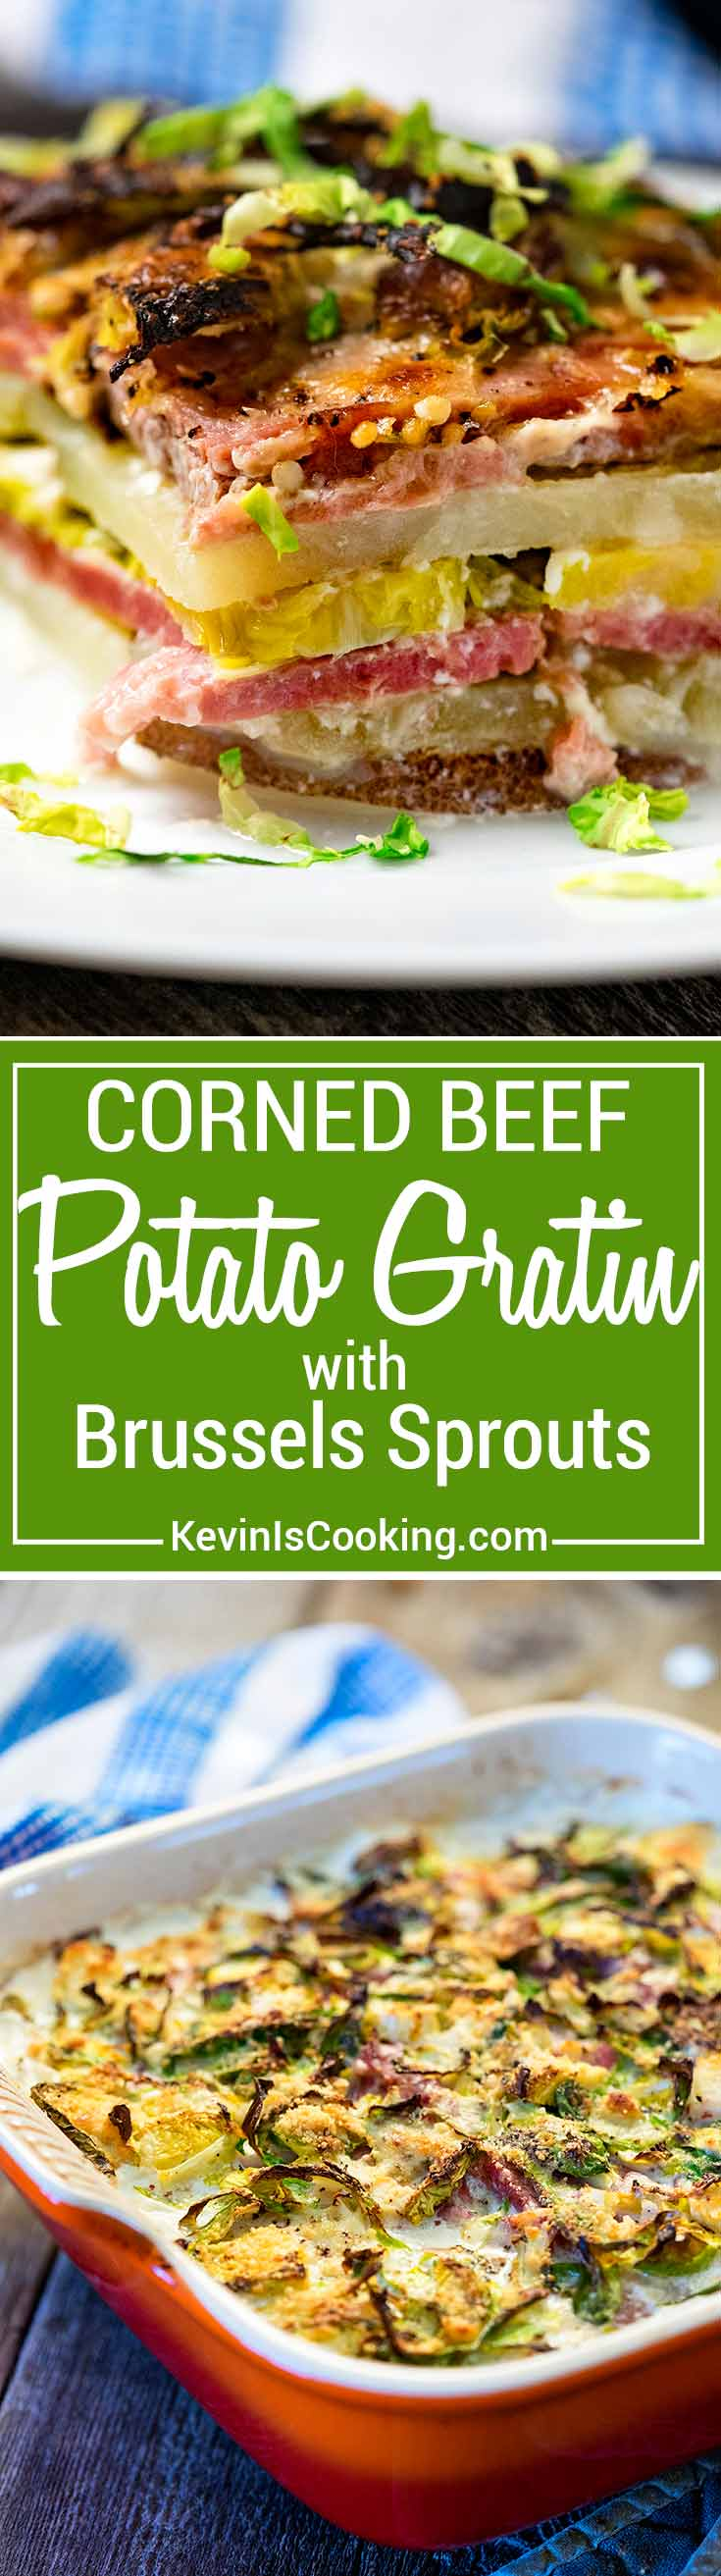 Want something different than the usual St. Patrick's Day dinner? How about this layered Corned Beef Potato Gratin with Brussels Sprouts? Let me show you!